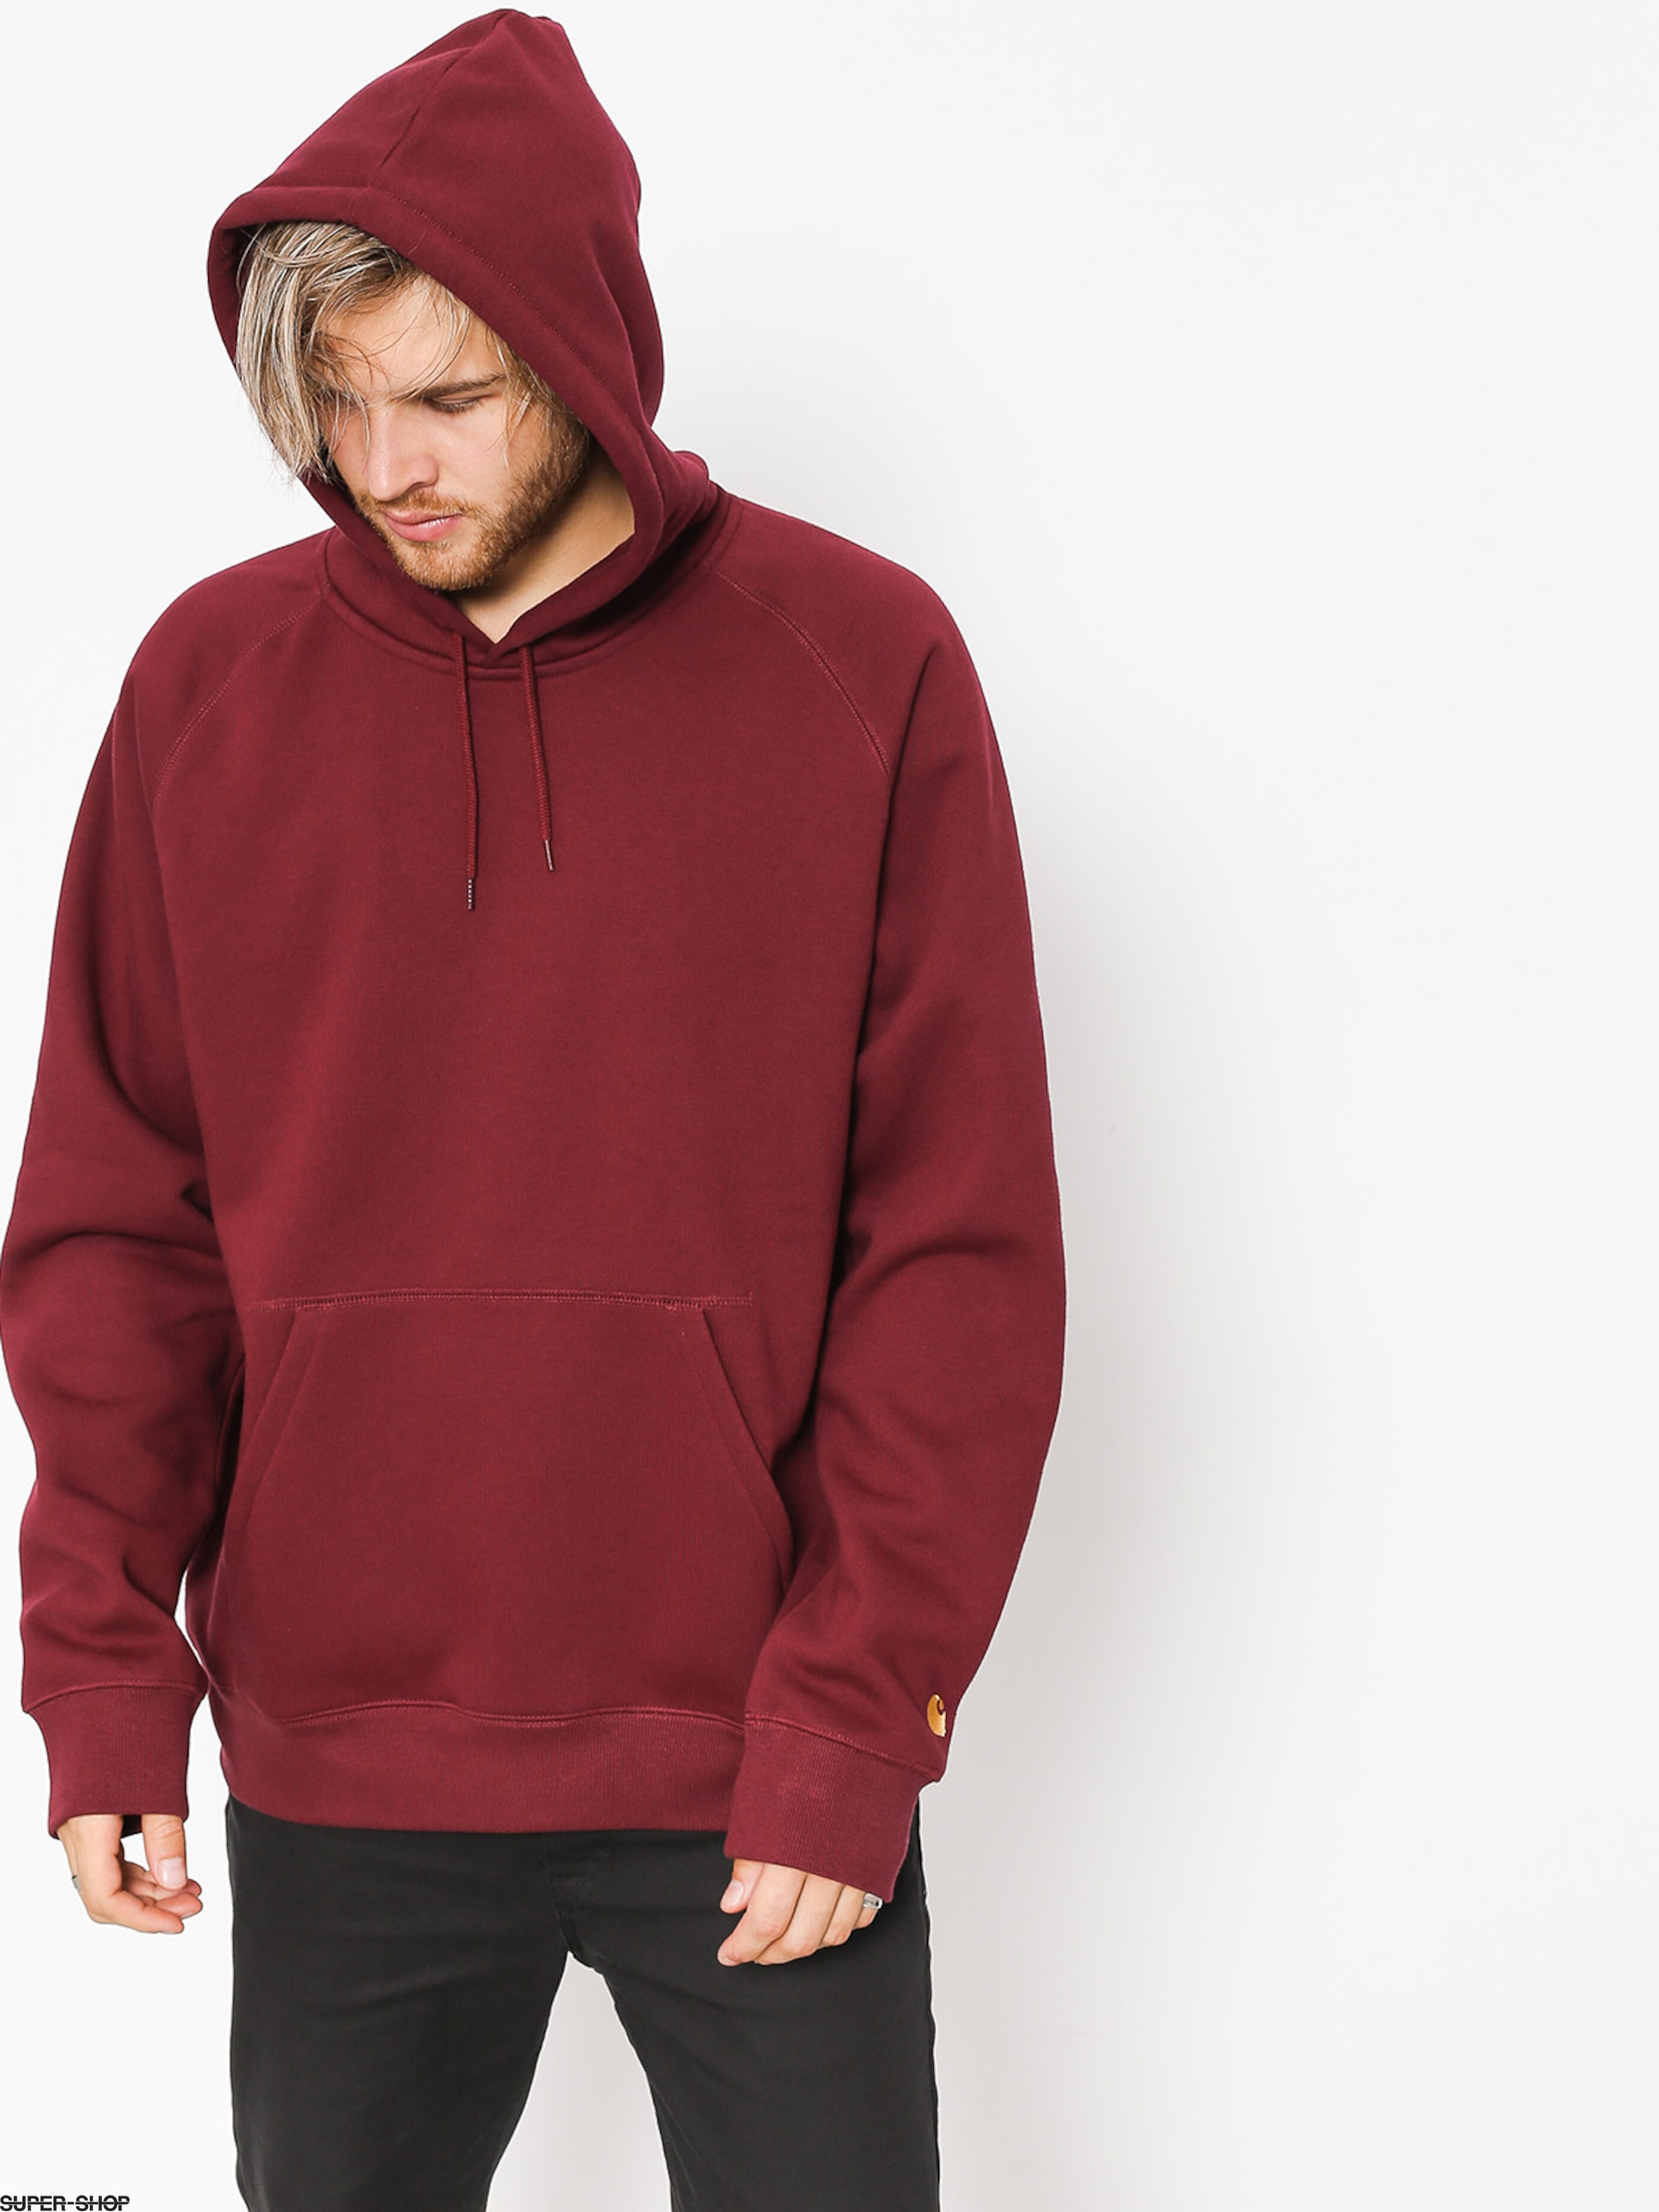 e2d38c8a4804 958610-w1920-carhartt-wip-hoodie-chase-hd-mulberry-gold.jpg